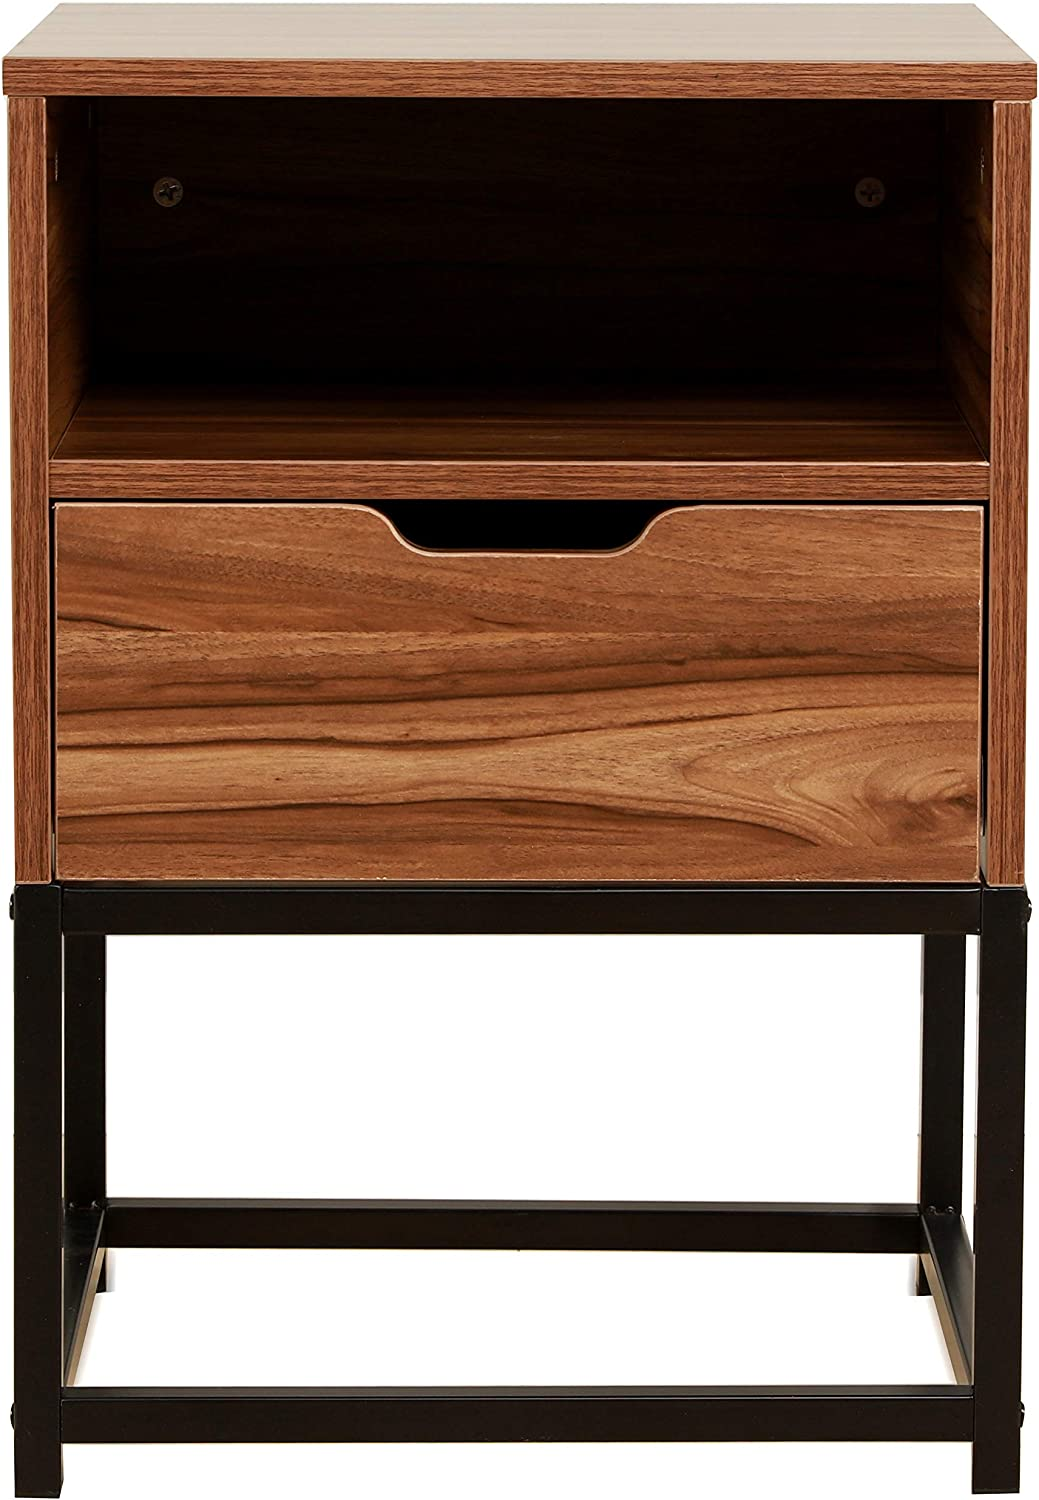 Cherry Tree Furniture CLIVE Mid-Century Style Walnut Colour Bedside Table Nightstand End Table With Black Metal Frame (BC-01)